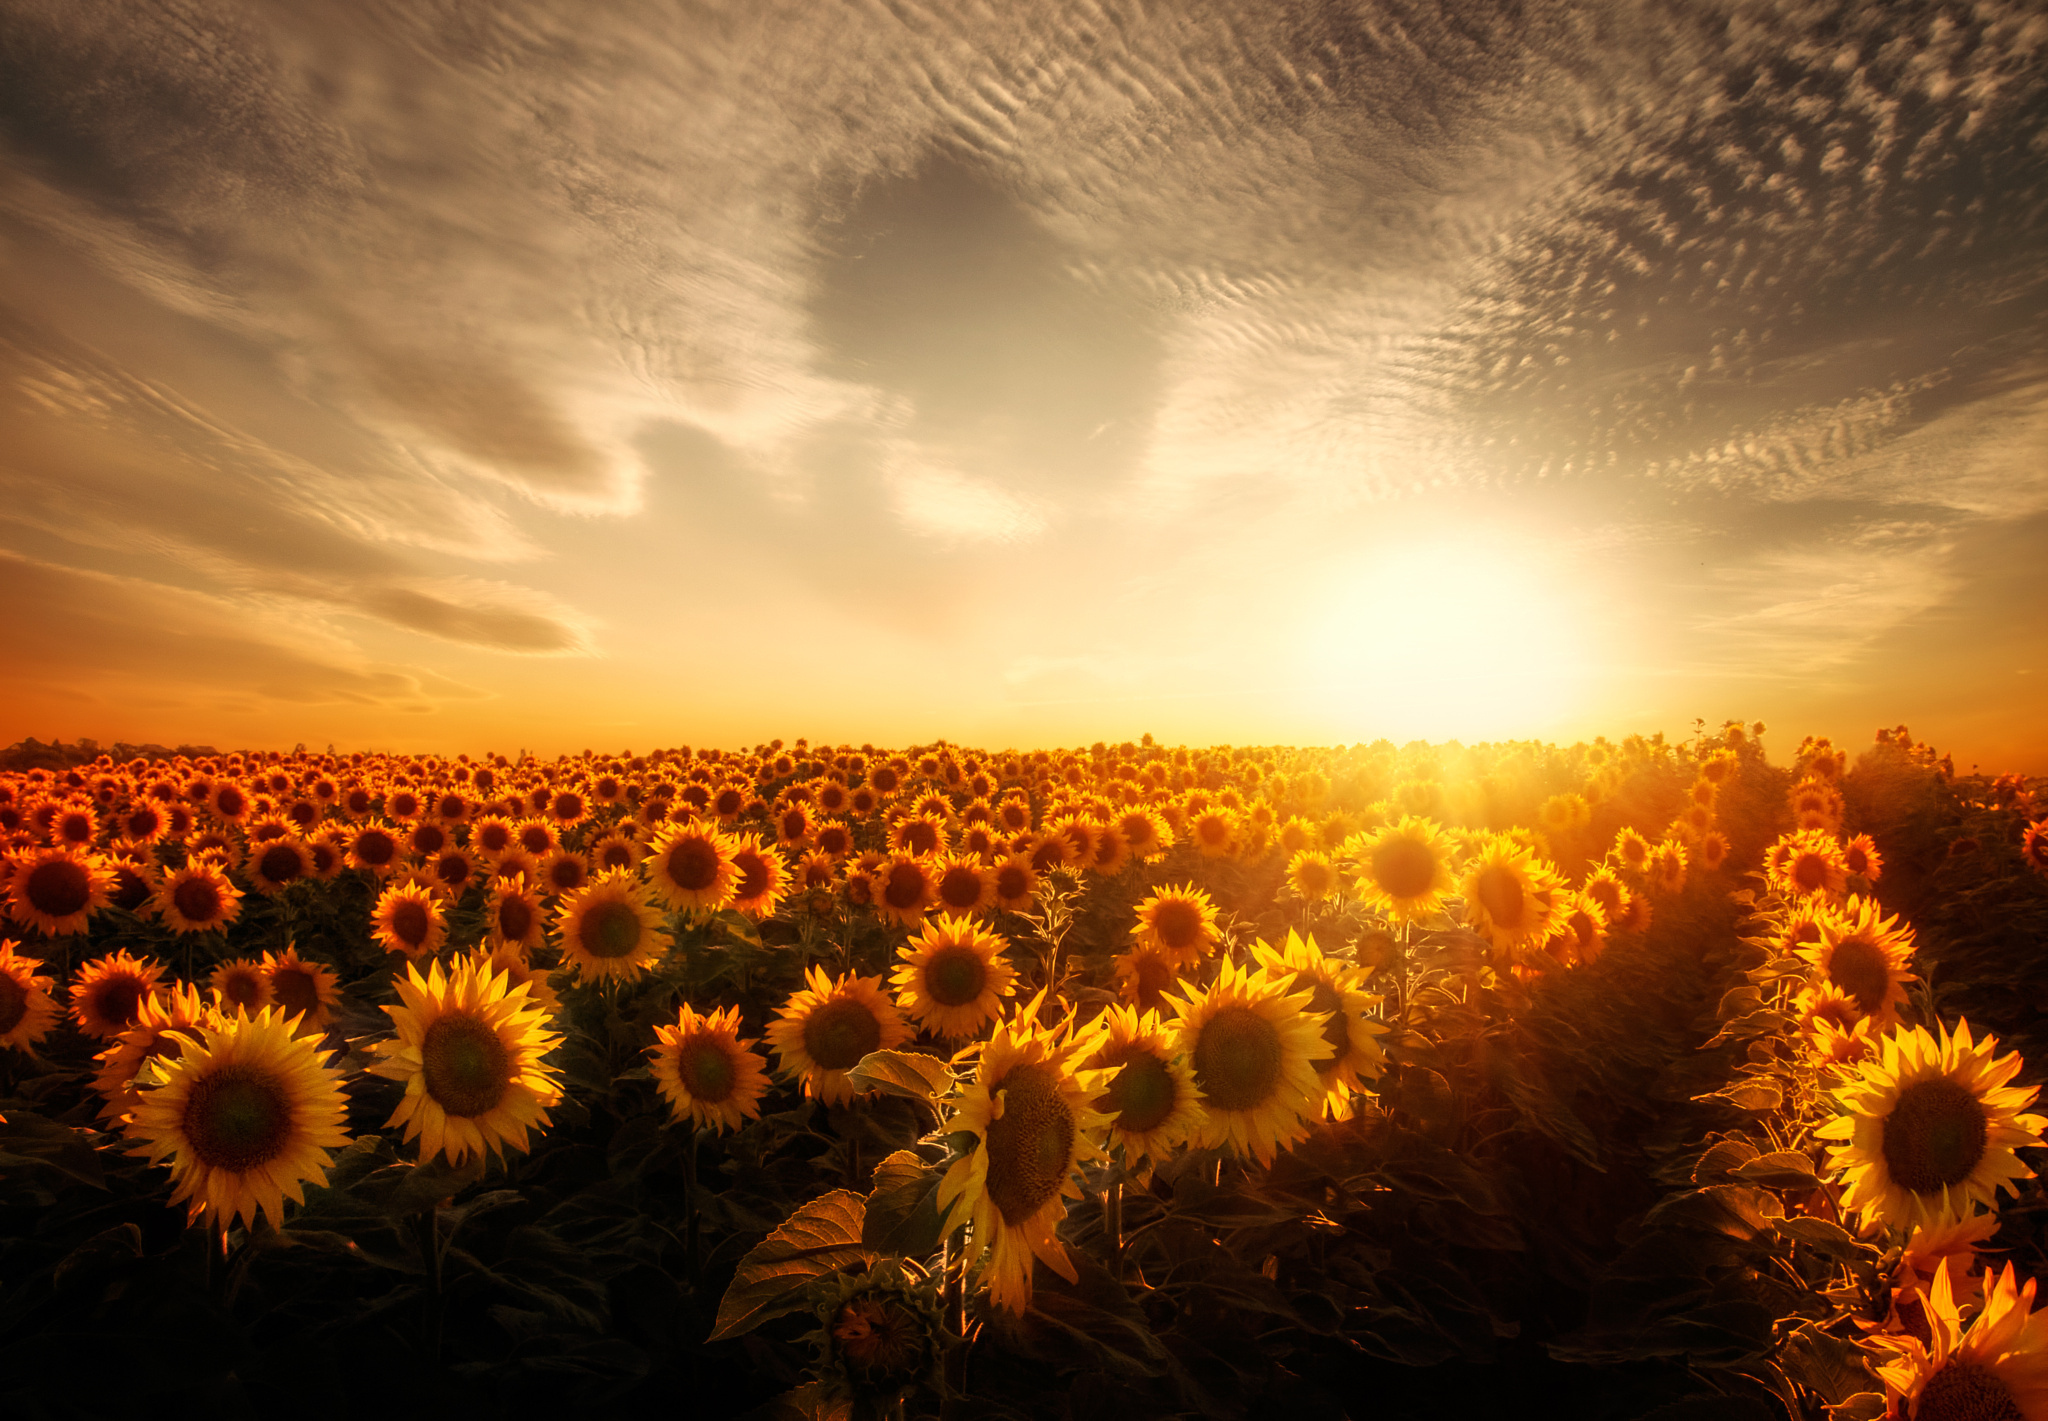 Sunflower Field HD Wallpaper